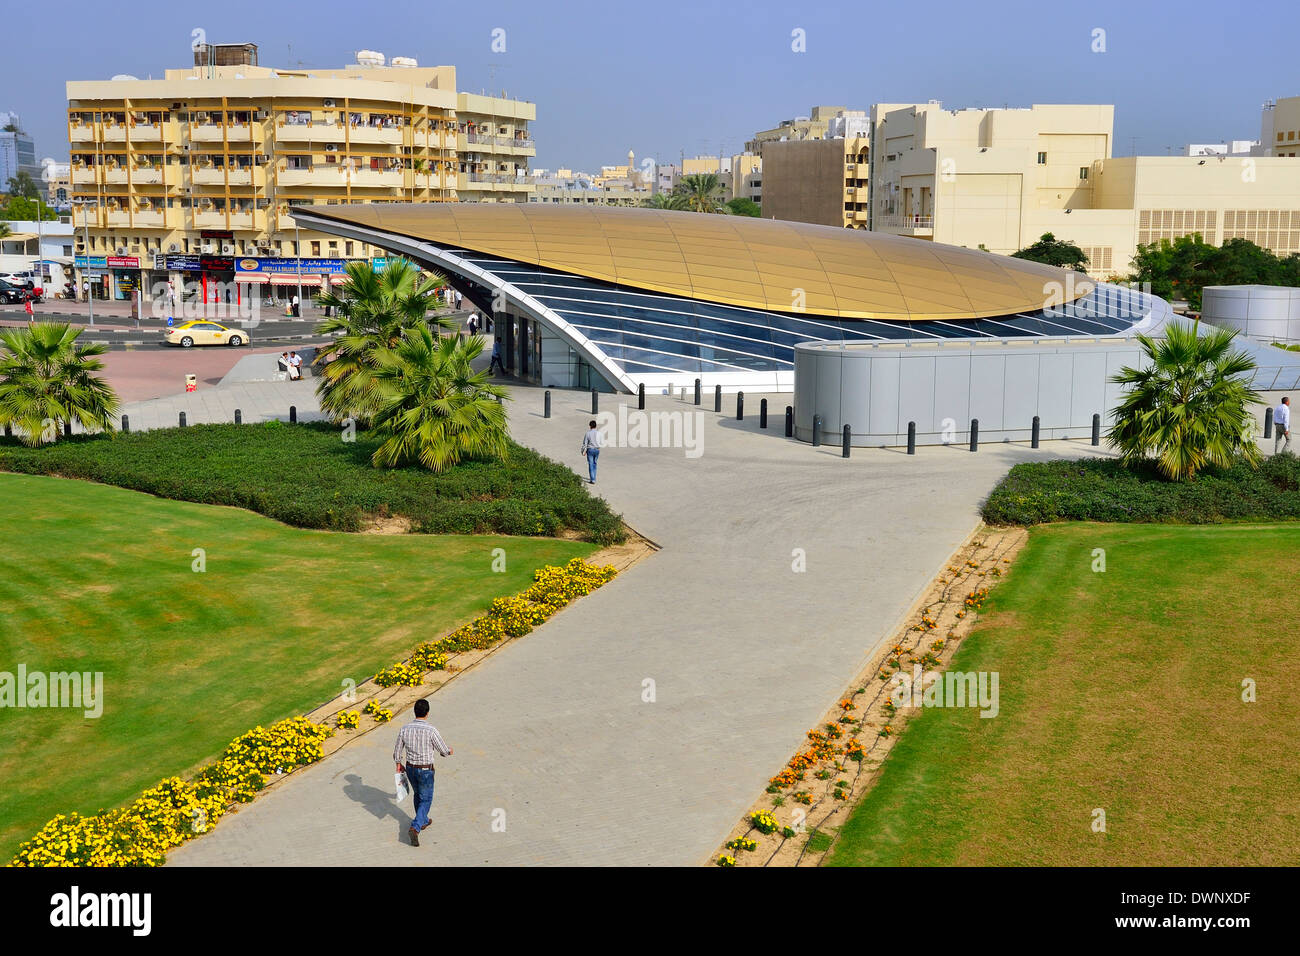 The Union Metro Station, Deira, Dubai, United Arab Emirates - Stock Image